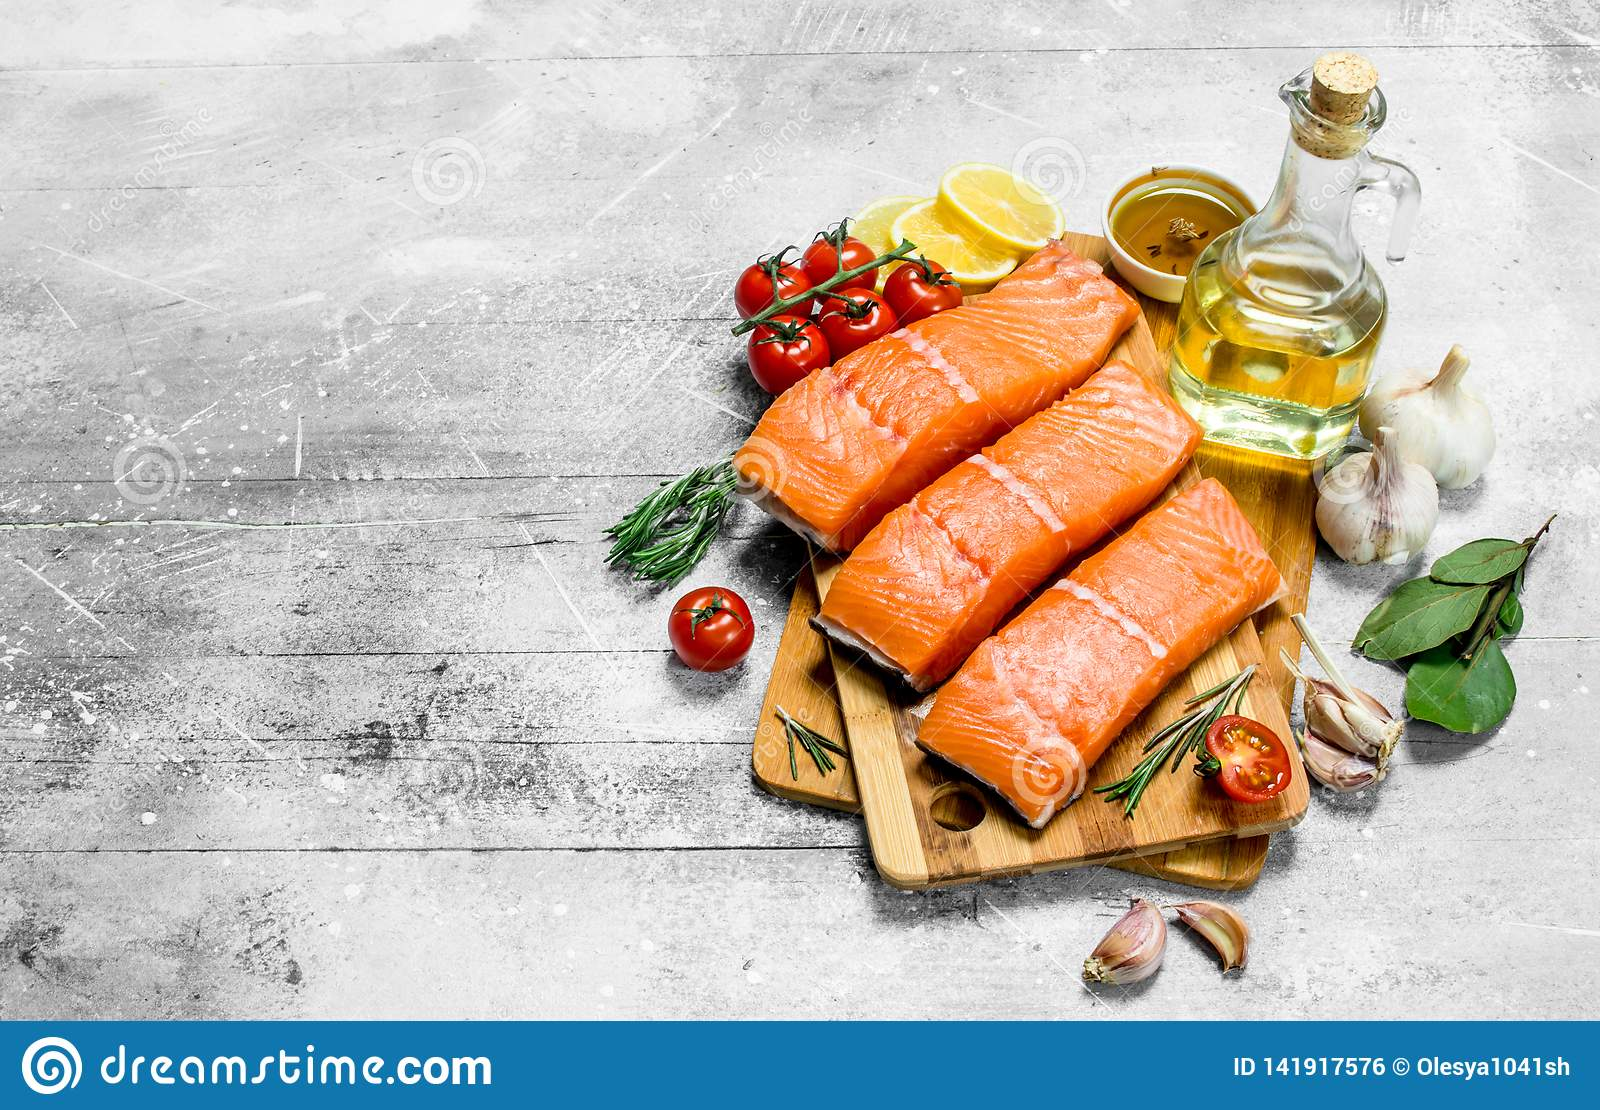 Raw salmon fish filet with spices, herbs and ripe tomatoes